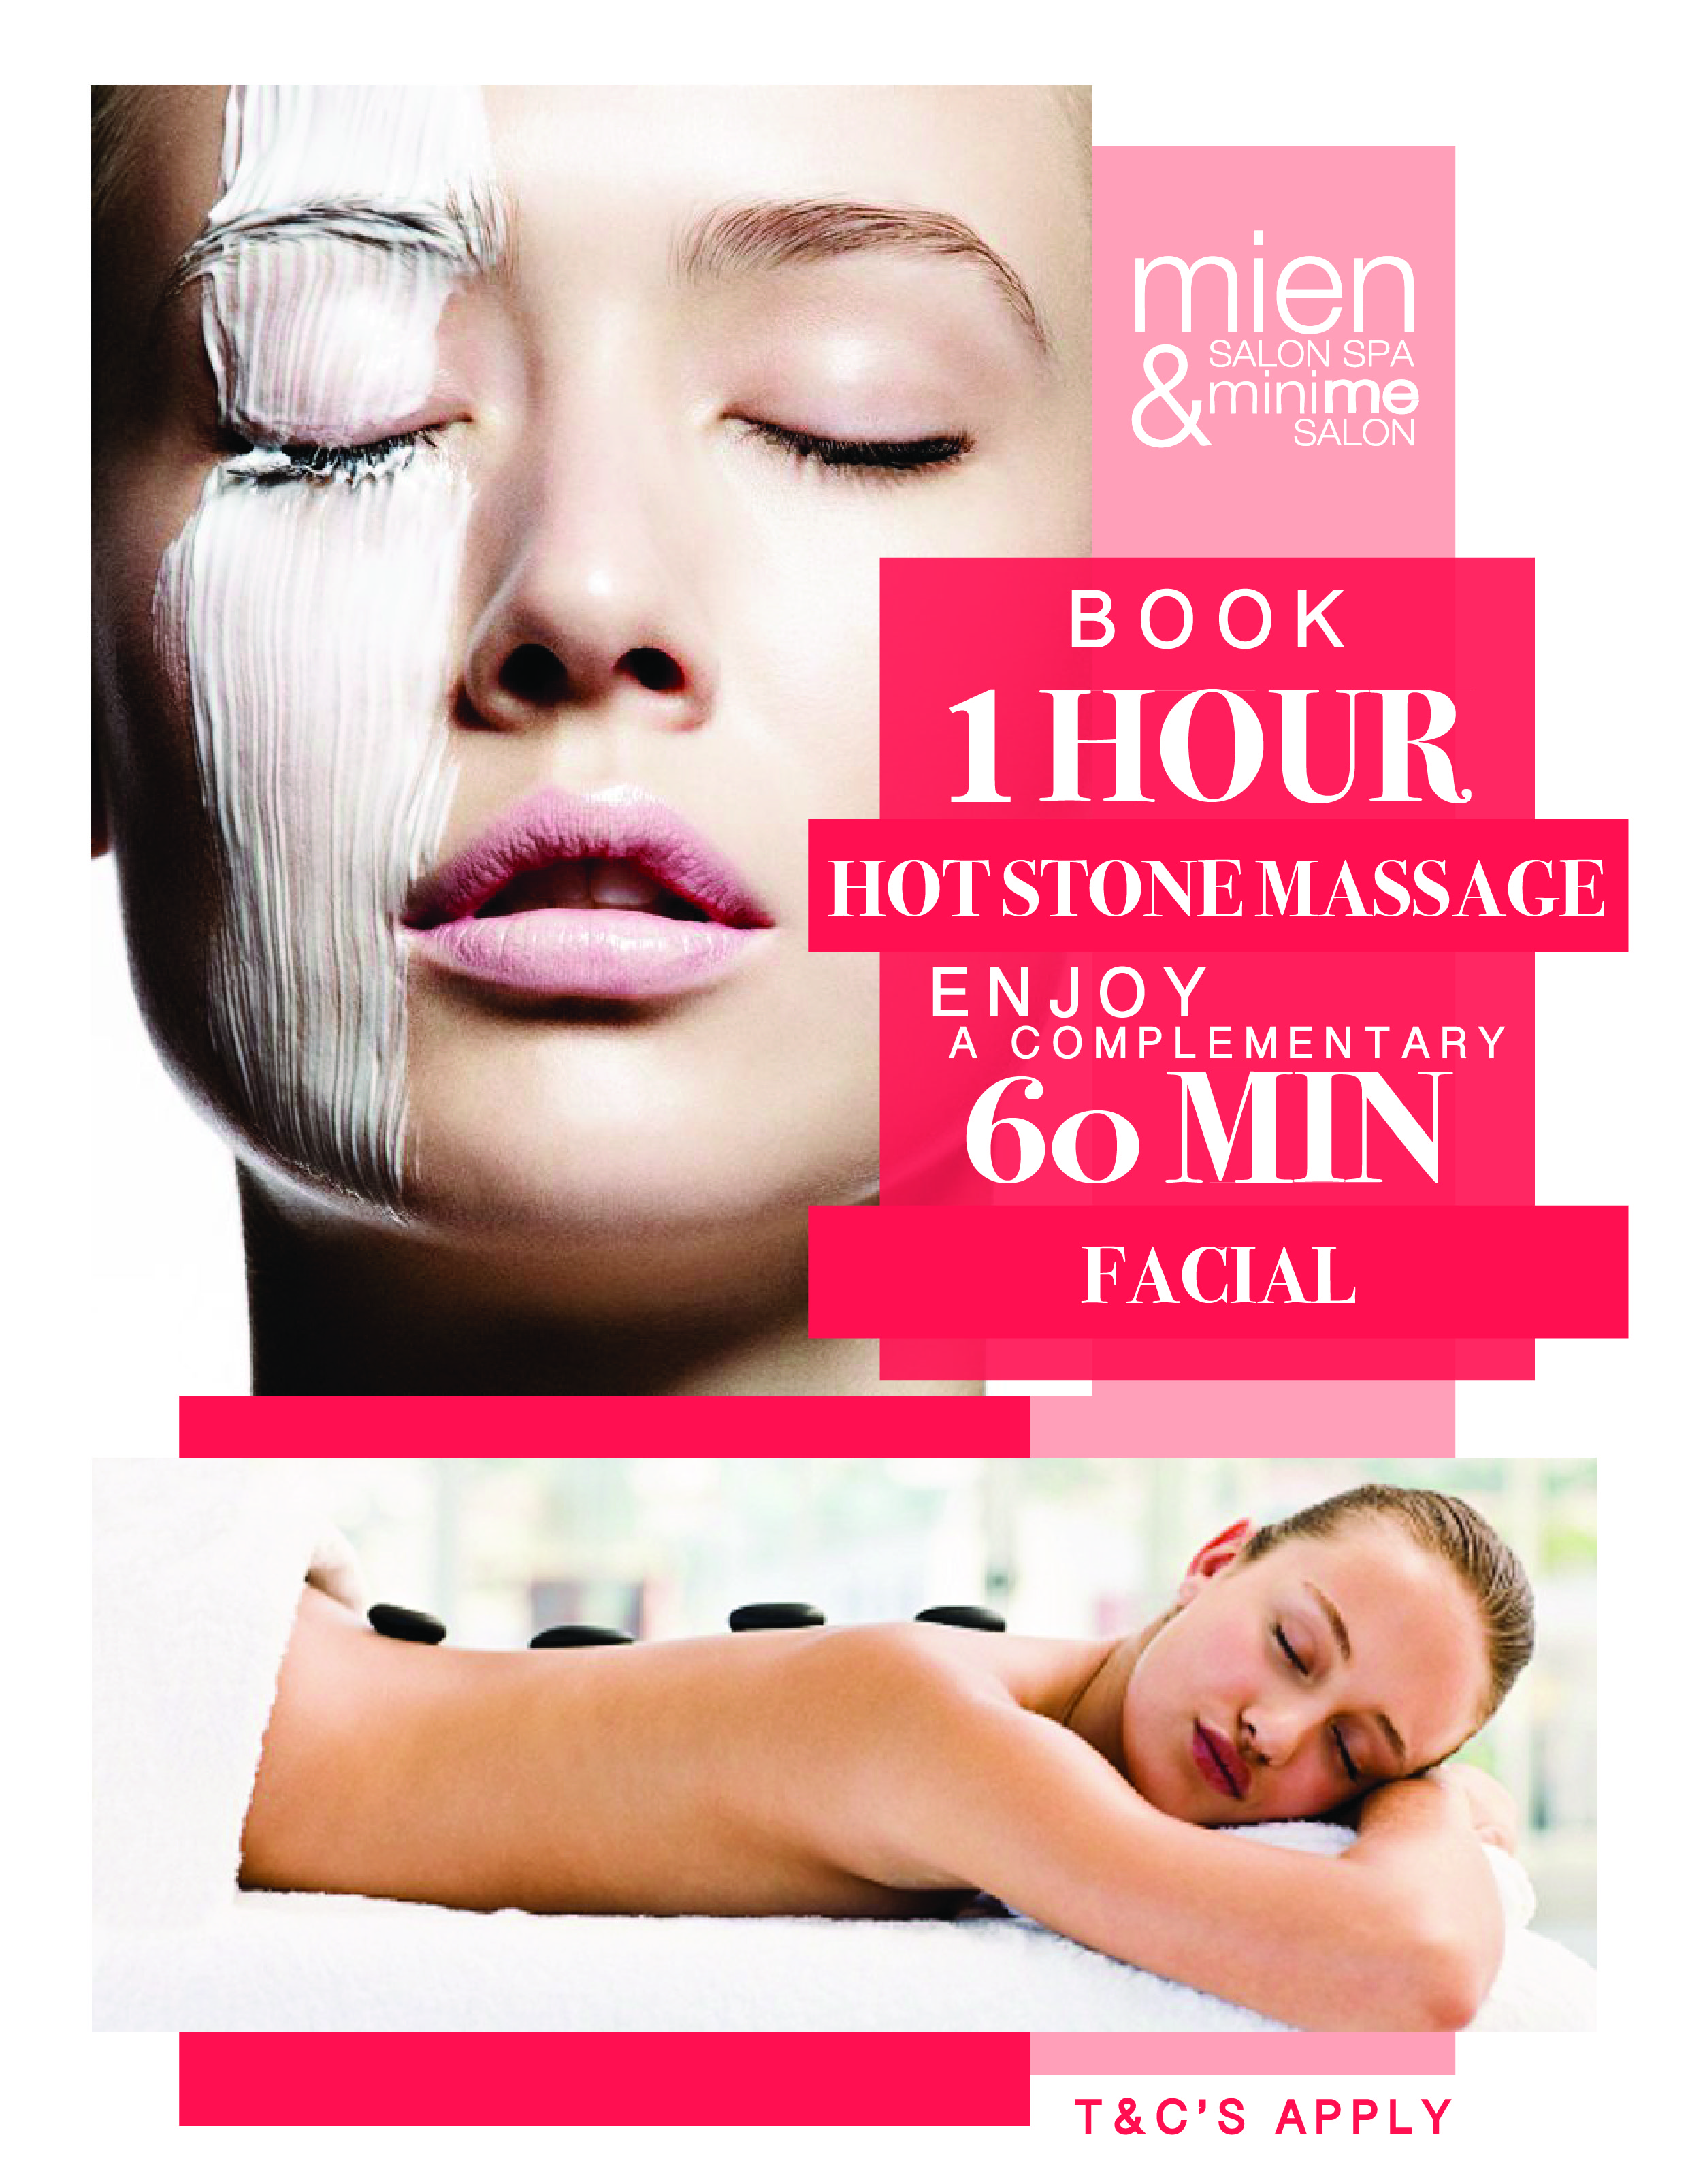 - Winter is here! And what better way to warm up with a hot stone massage.Book a 60min facial and receivea complimentary 30min hot stone back treatmentPROMO AVAILABLE FROM TODAY TILL 21ST JULYT&C'SBOOK NOWOR CALL 9482 9199